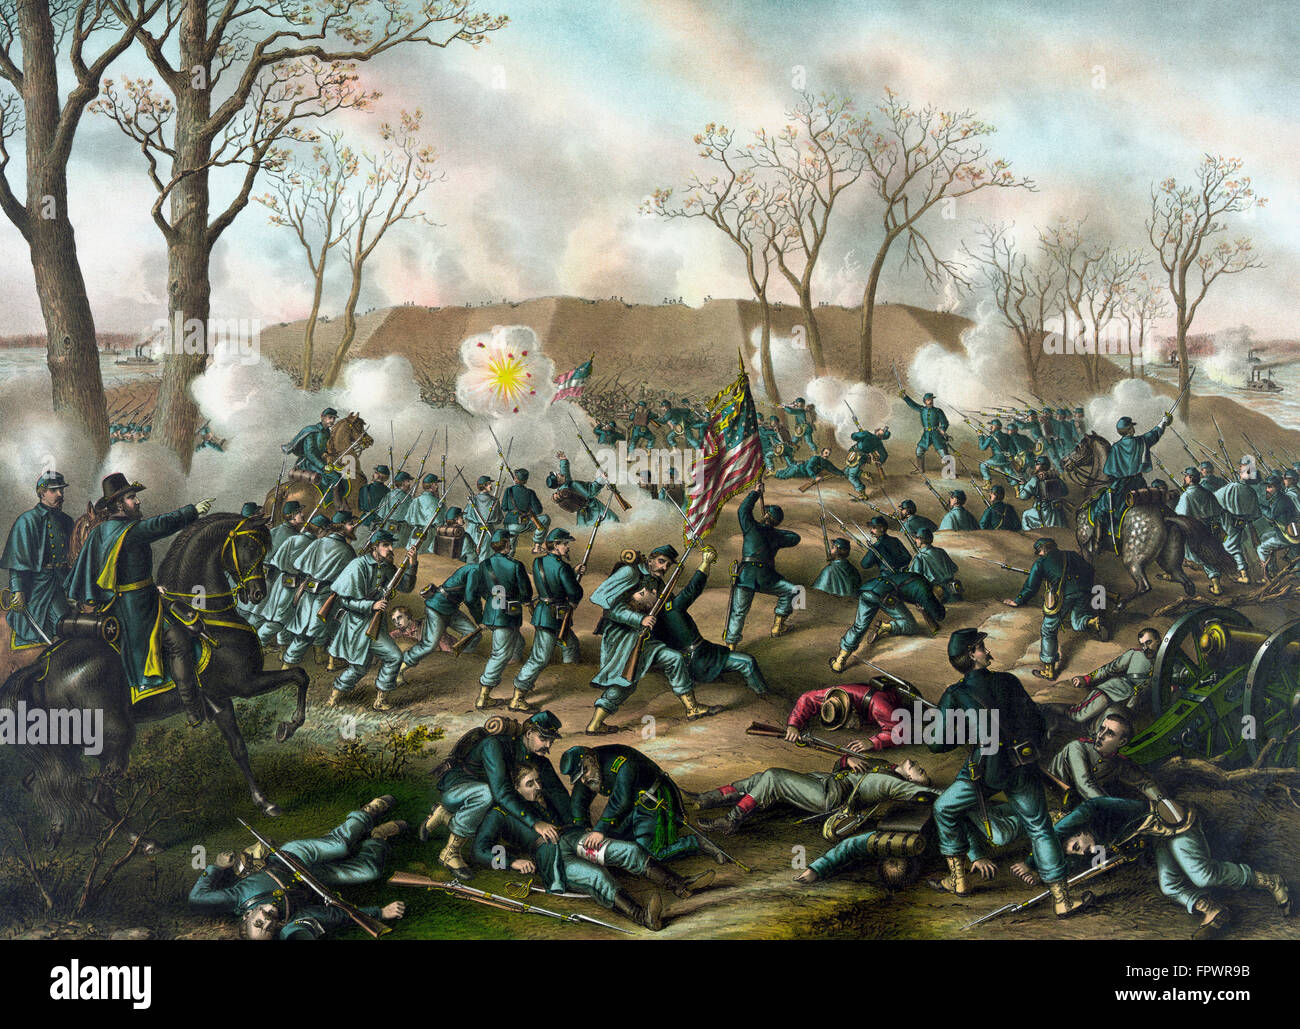 Civil War print of Union and Confederate troops fighting at The Battle of Fort Donelson. The capture of the fort - Stock Image